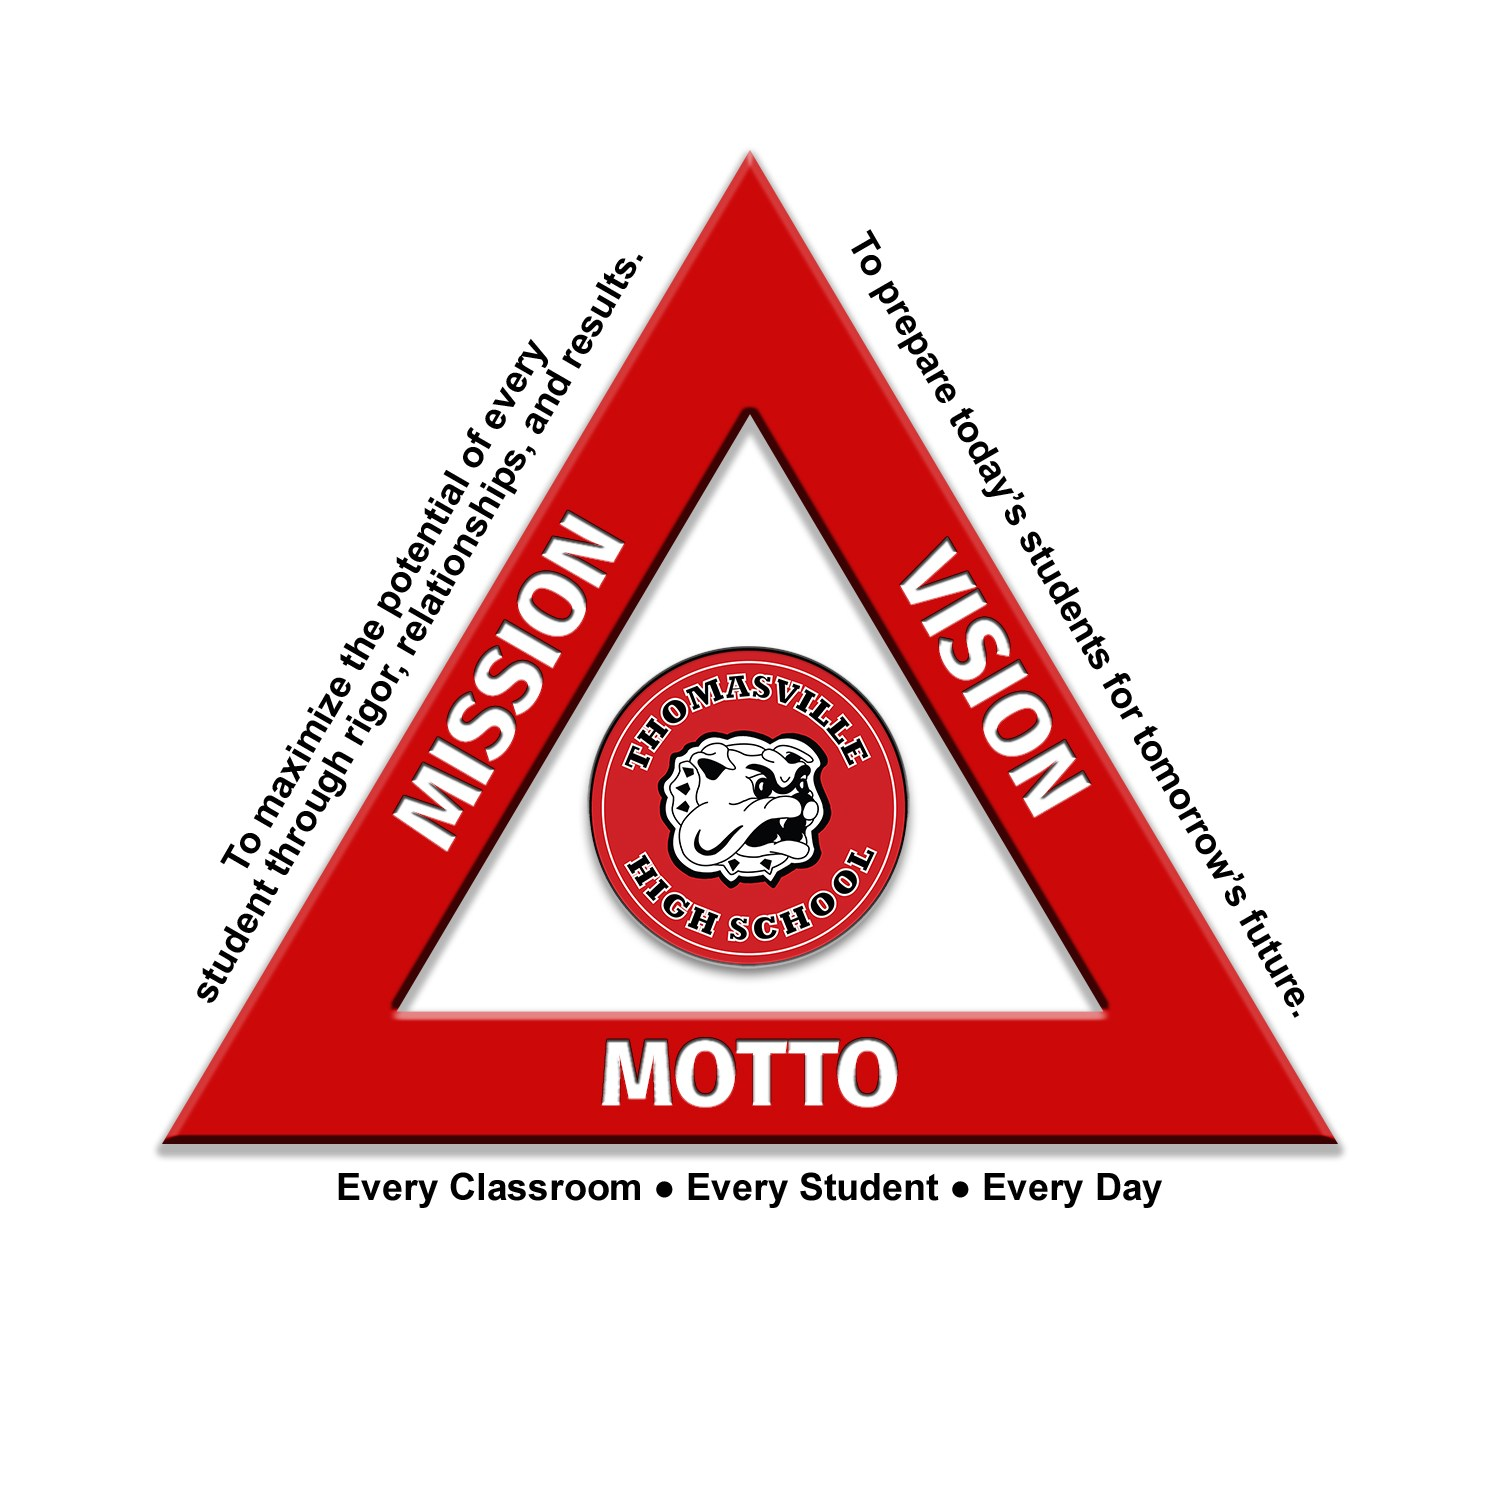 Mission, Vision, & Motto Image